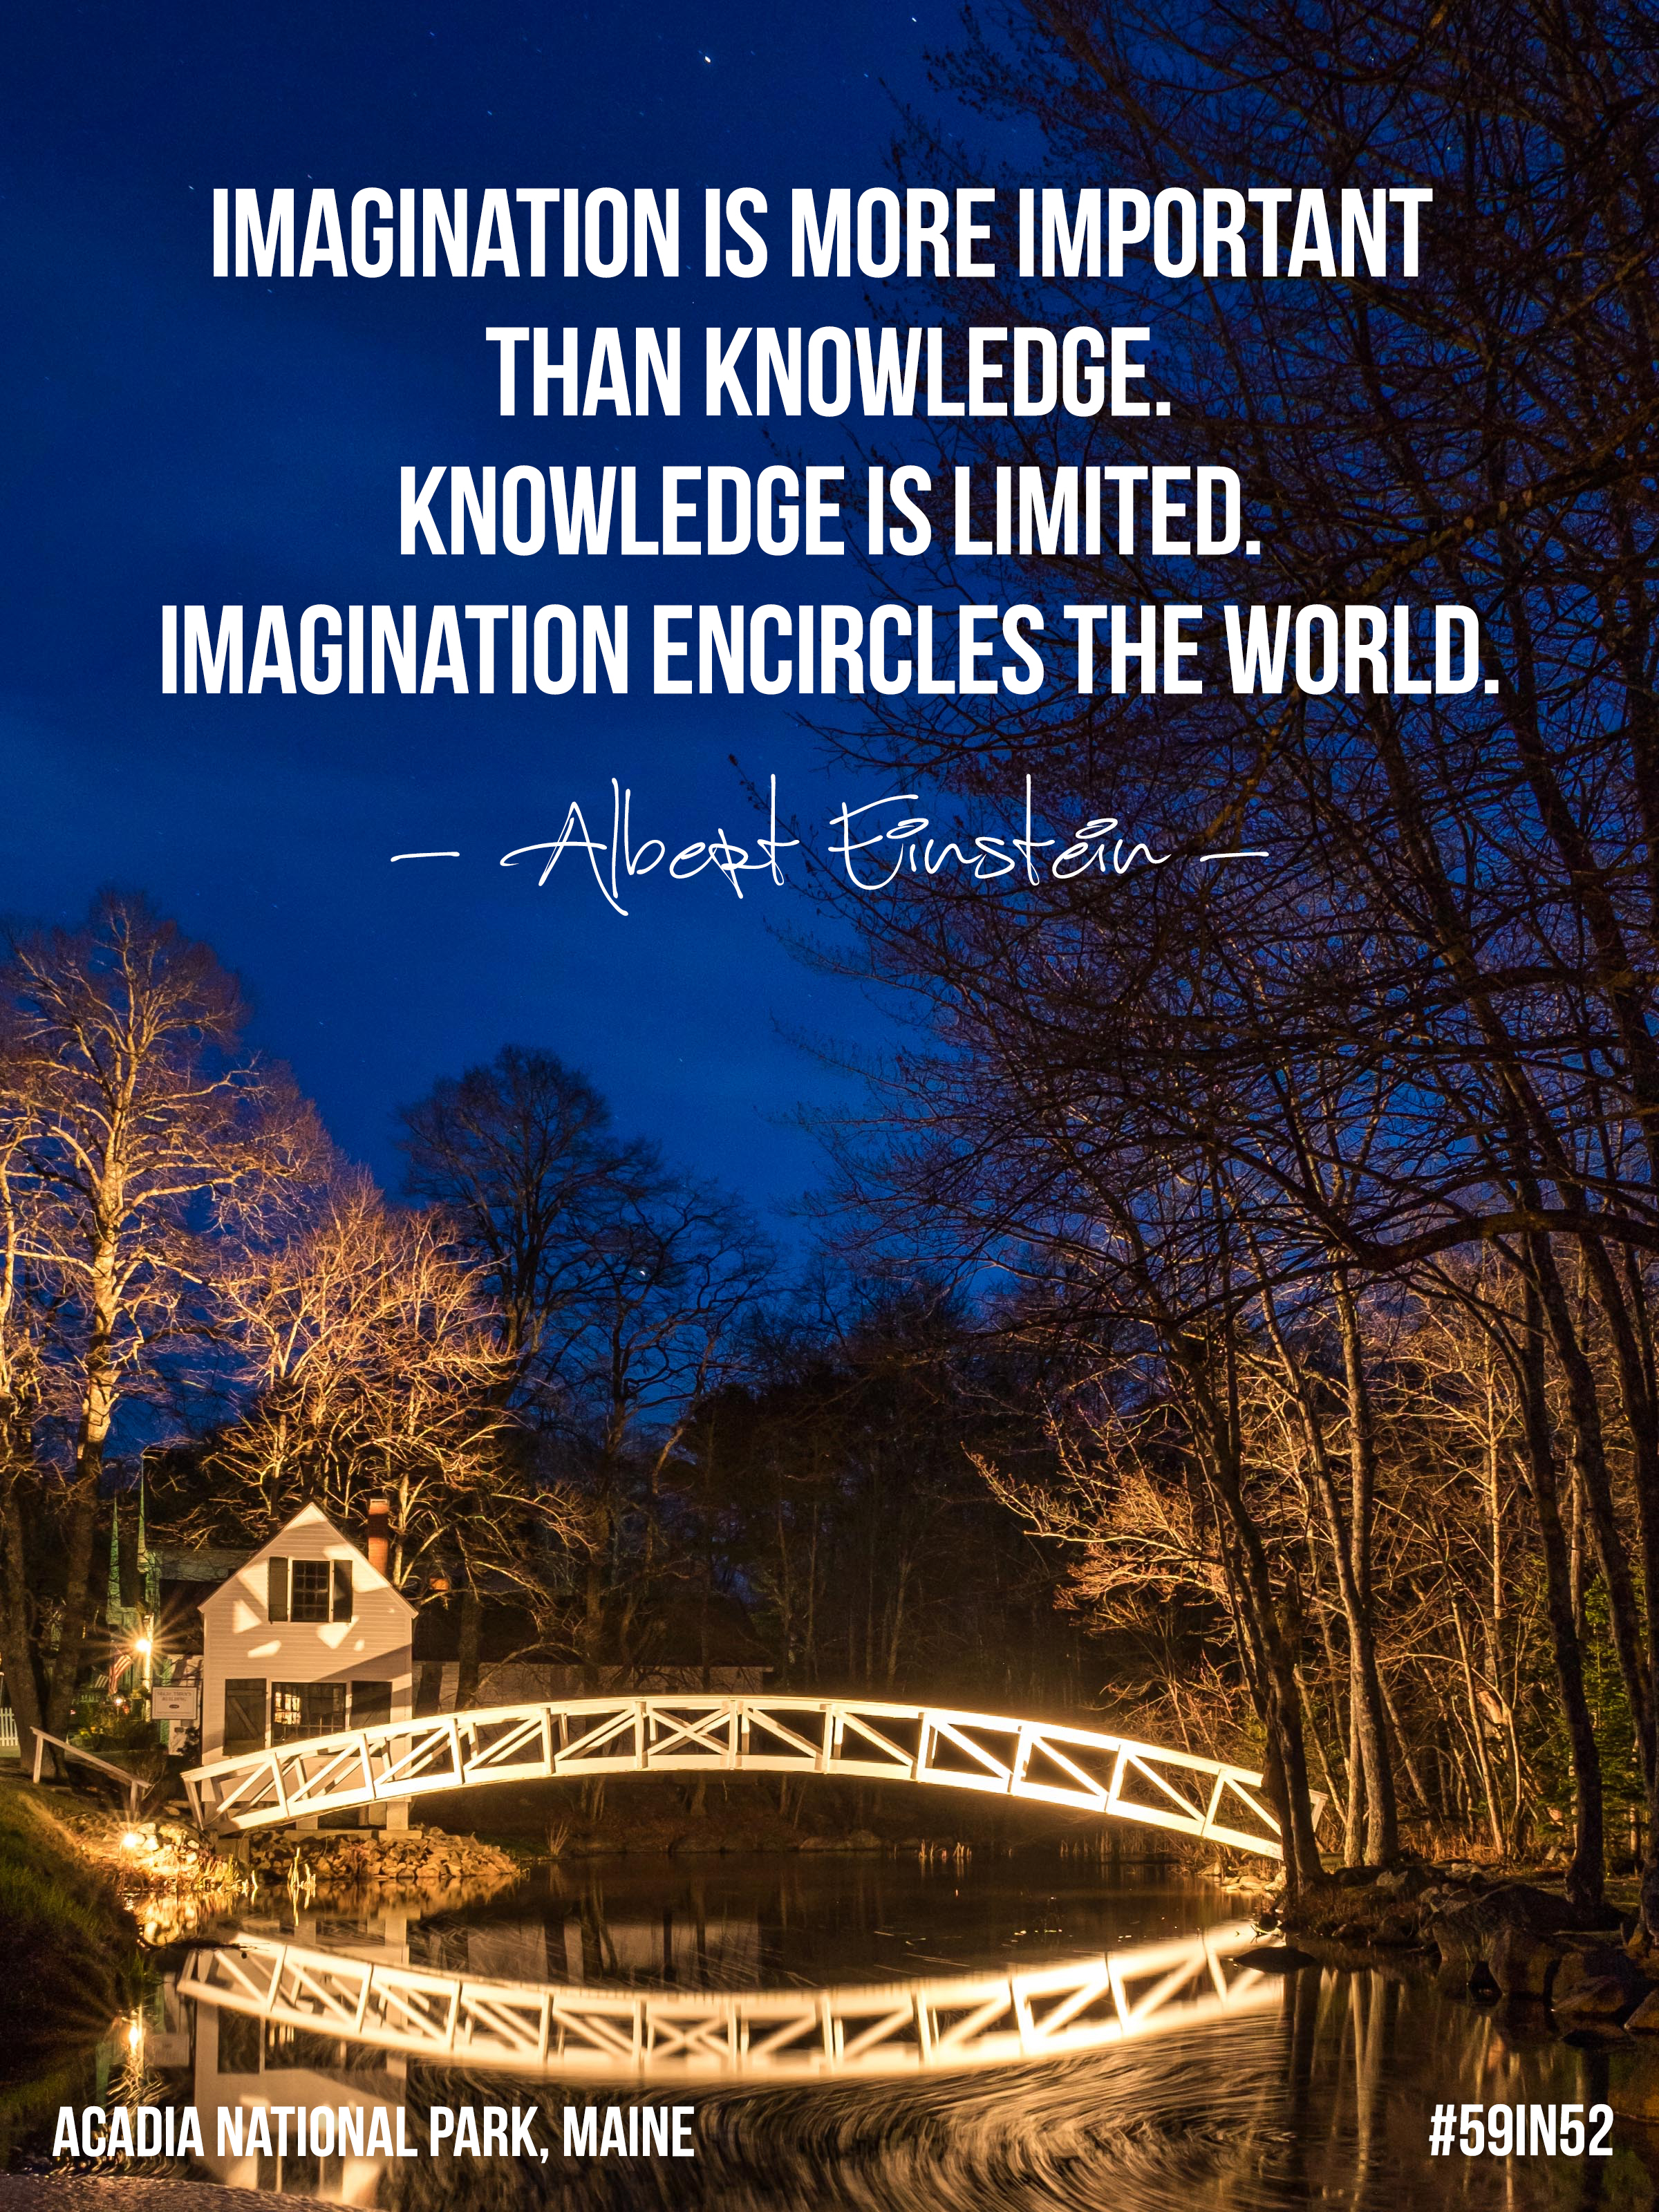 """"""" Imagination is more important than knowledge. Knowledge is limited. Imagination encircles the world."""" - Albert Einstein"""